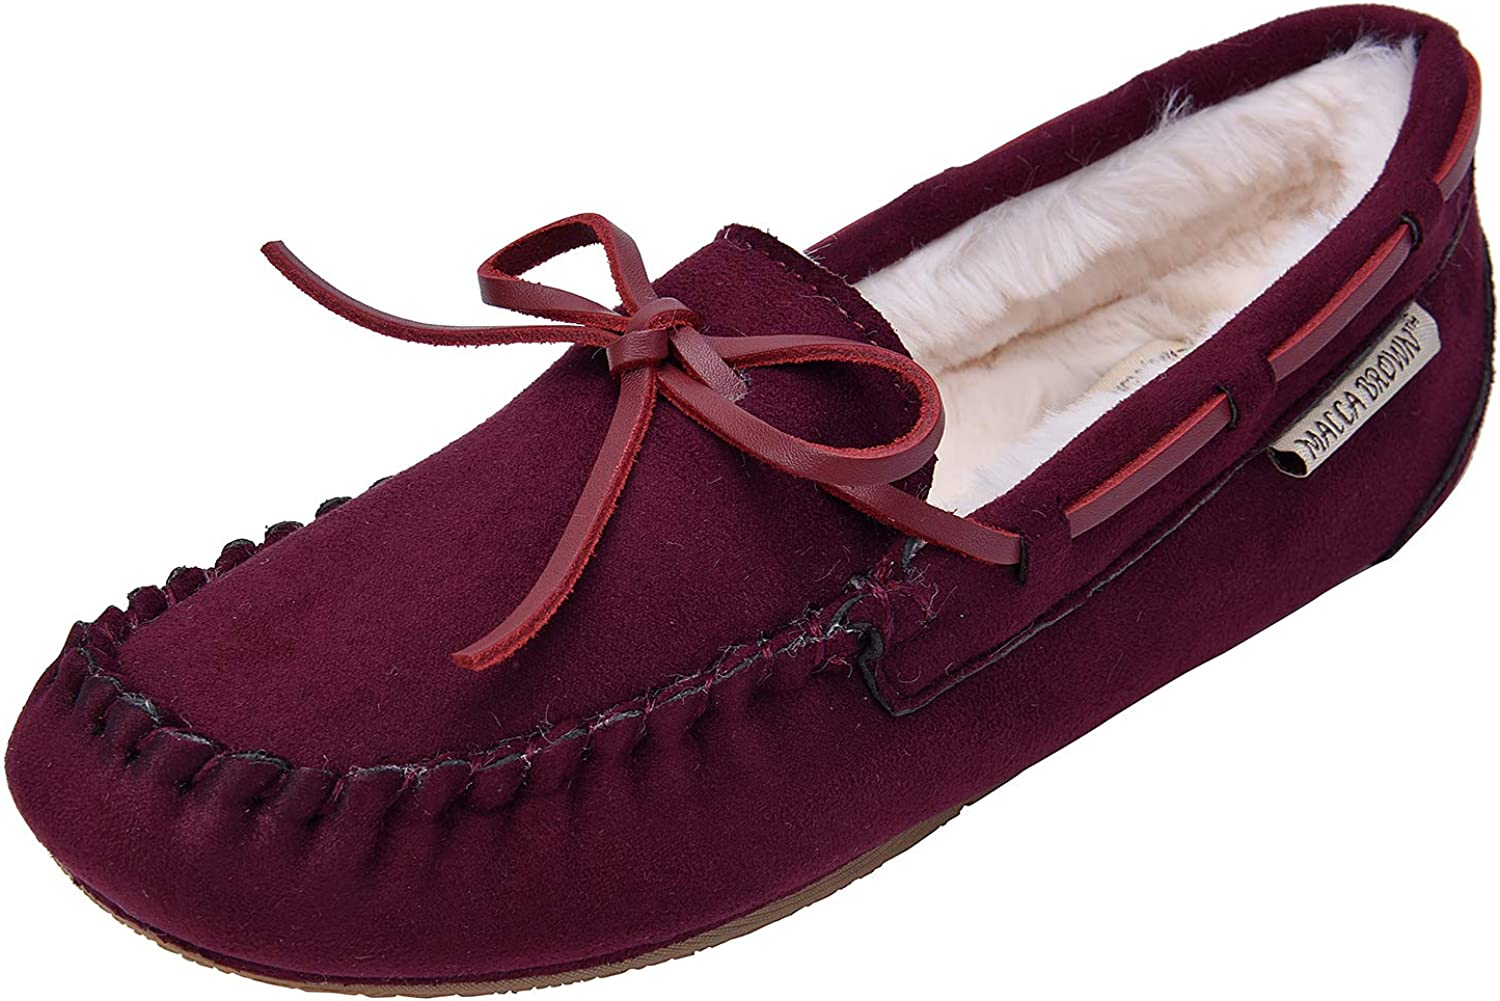 MACCA BROWN Women's Moccasin Slippers Loafer Flats Faux Fur Lined Indoor & Outdoor Slip On